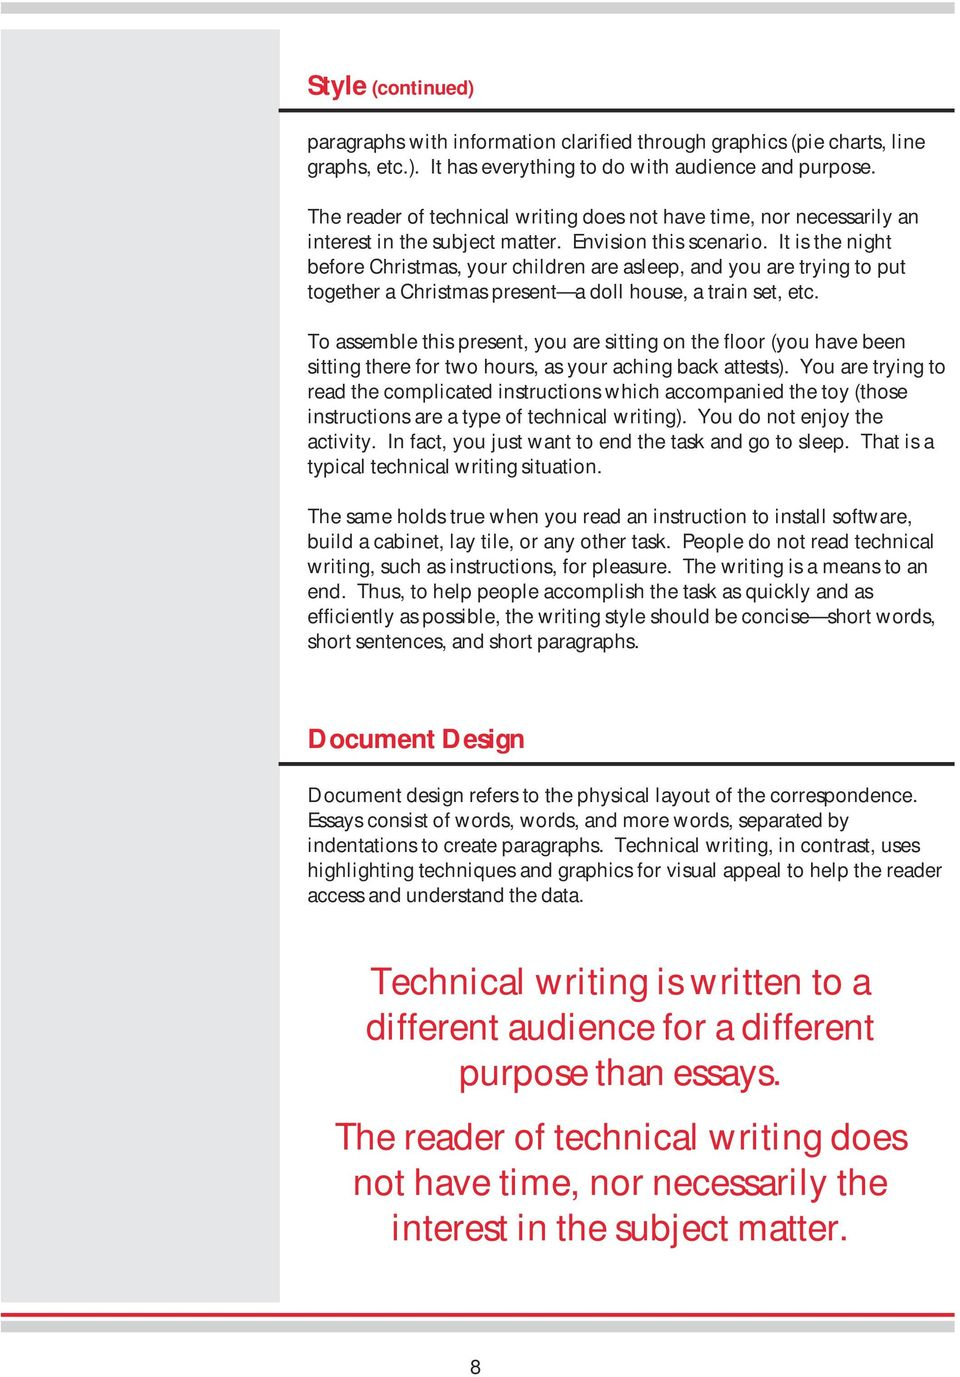 abbreviate words essay This abbreviation is usually found in proof reading, editing or note taking you might abbreviate the word paragraph to par  or para when editing essays or similar documents it is also common to see such abbreviations where space is a concern.